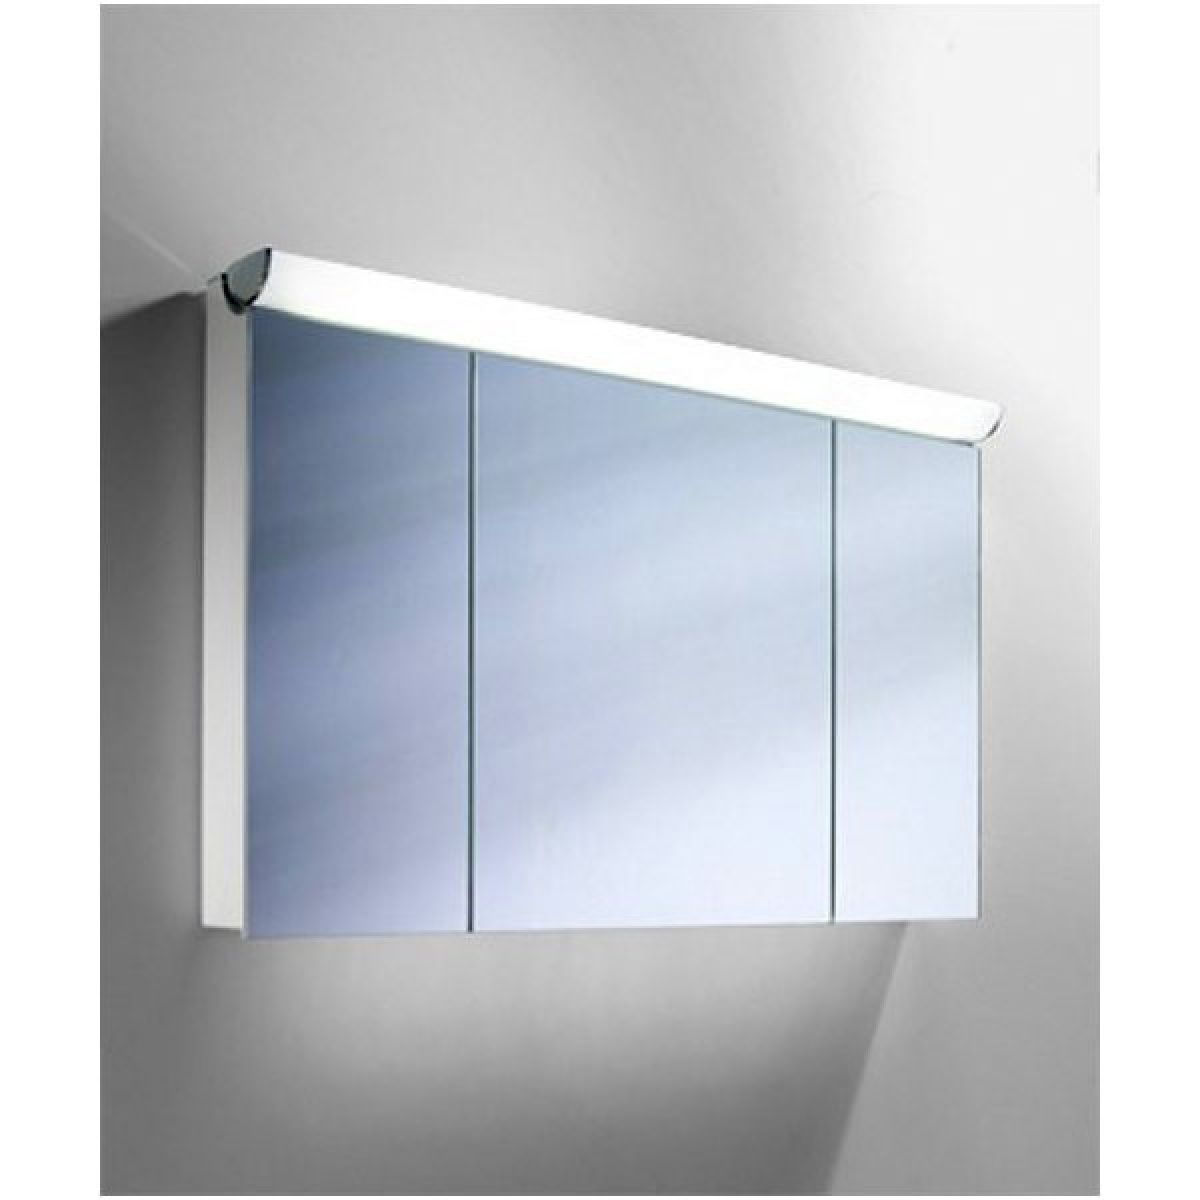 Schneider Faceline 3 Door Illuminated Mirror Cabinet 1300mm